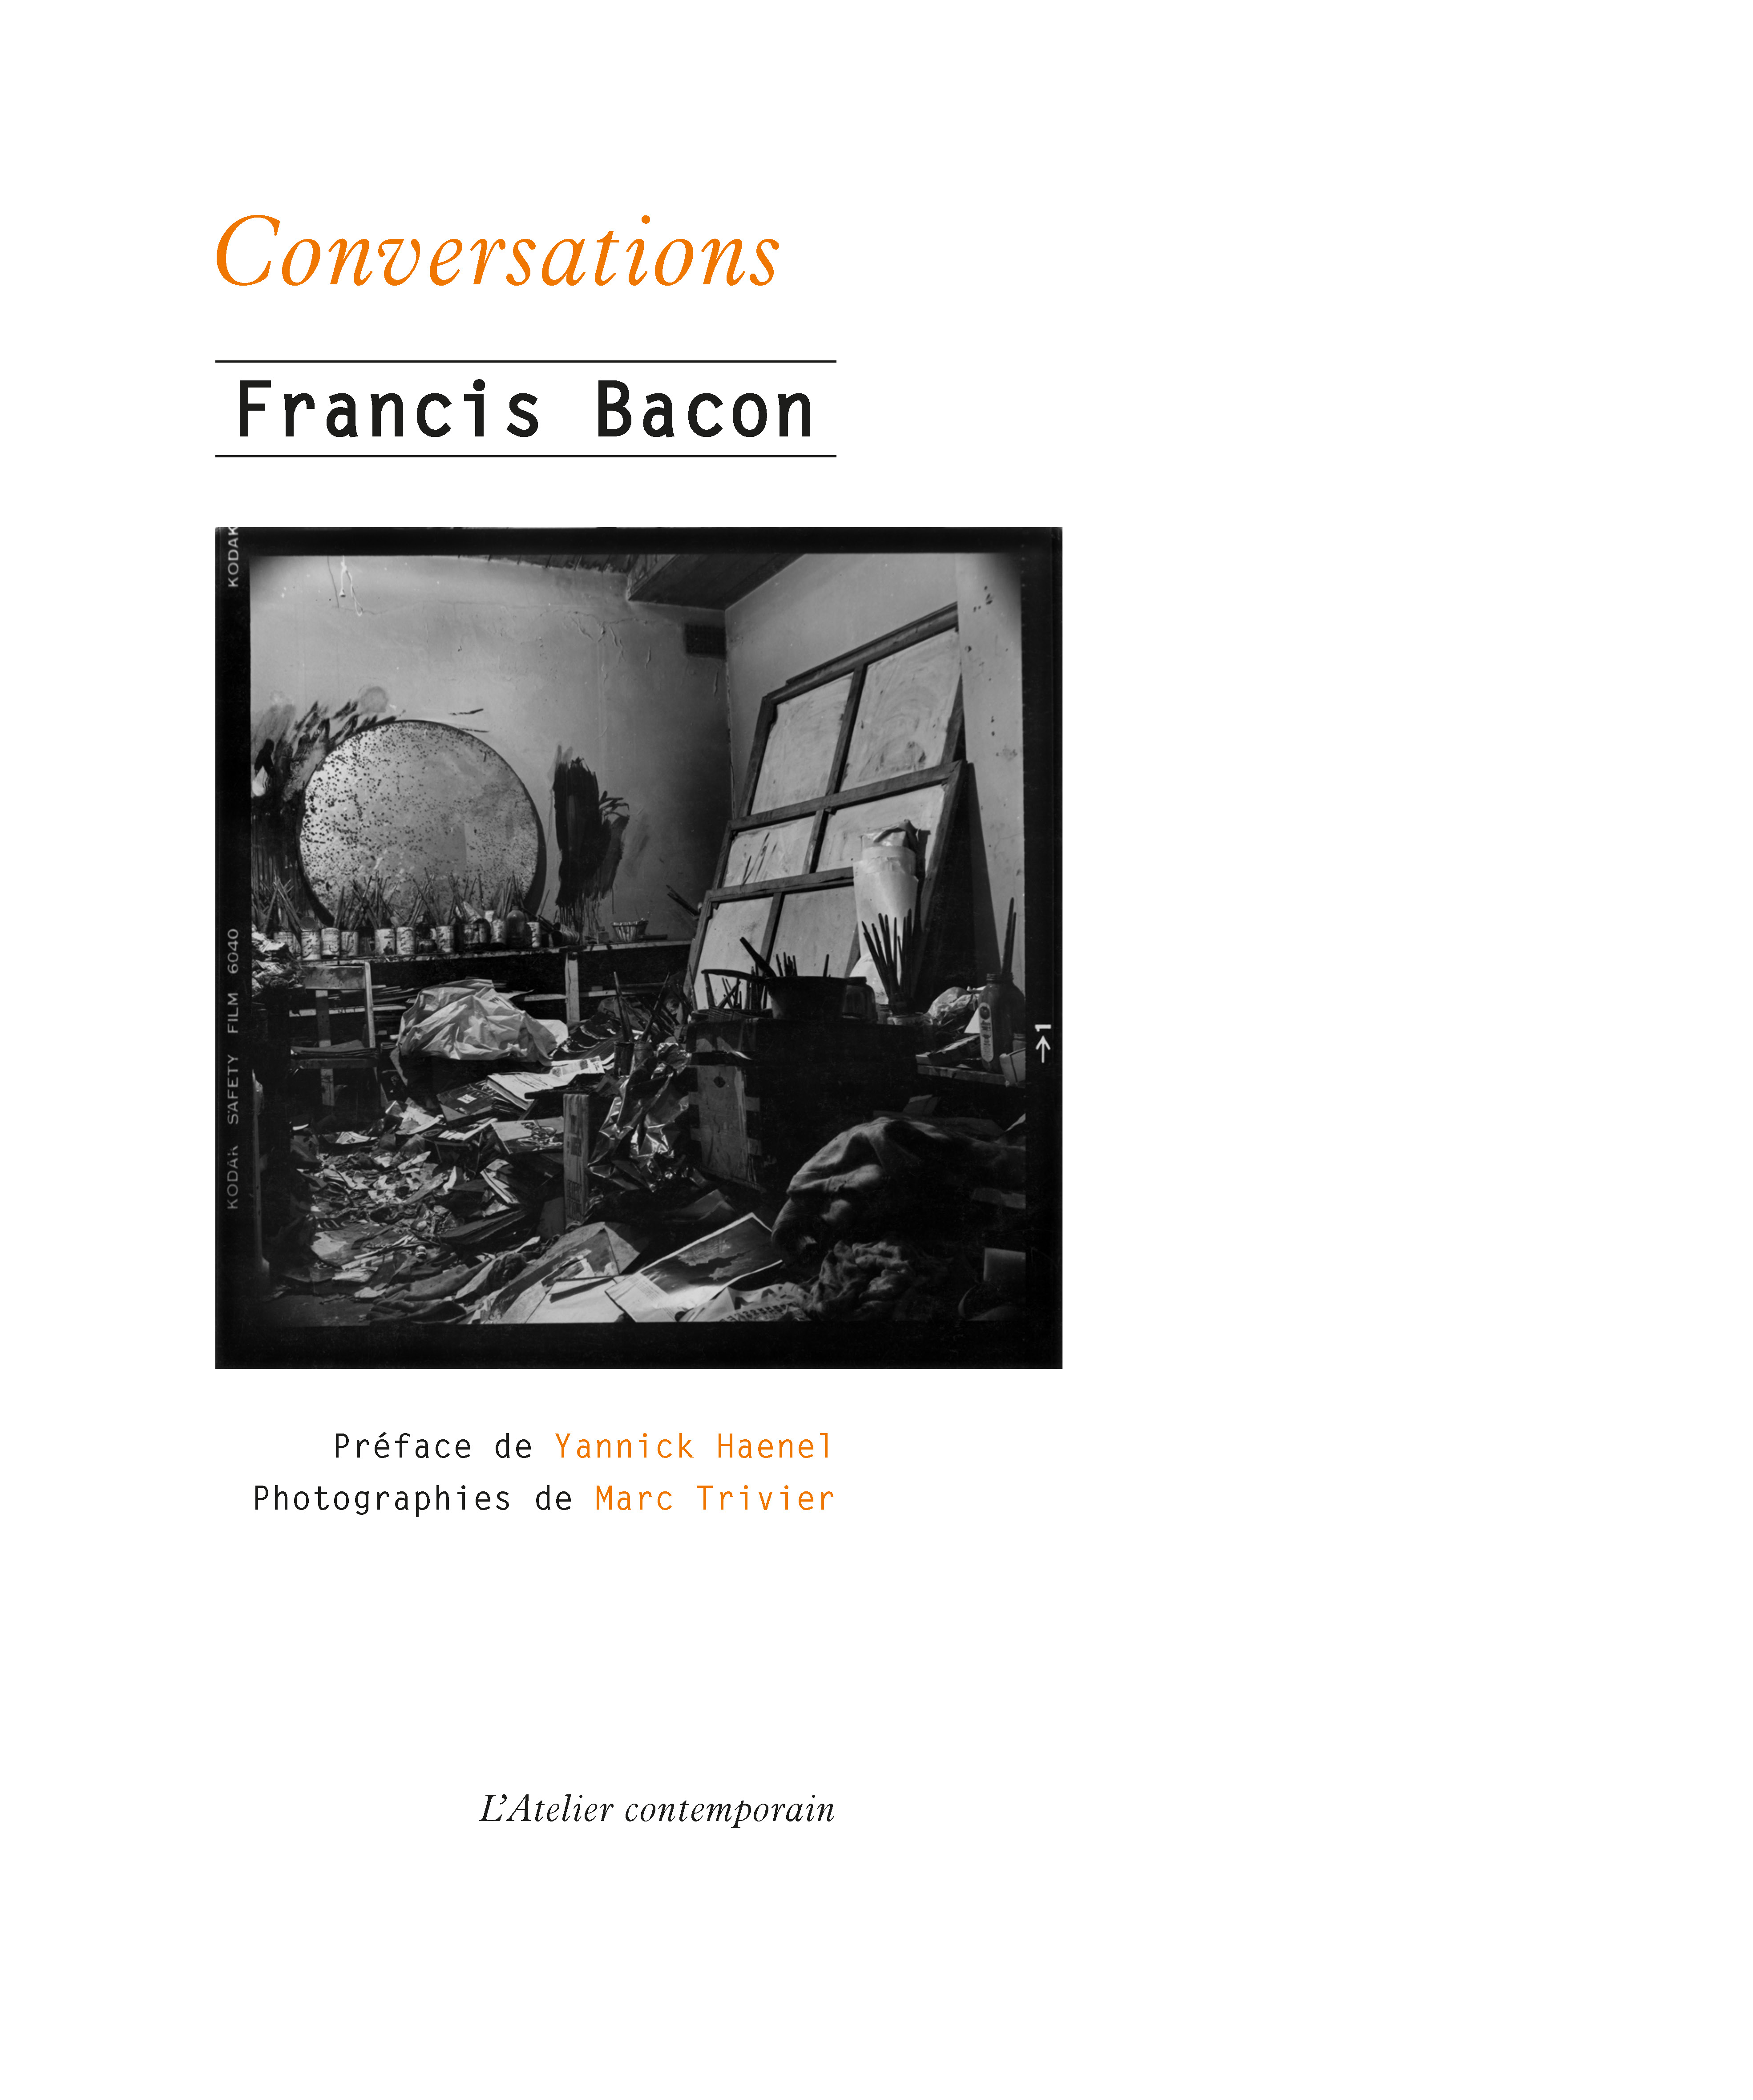 F. Bacon, Conversations